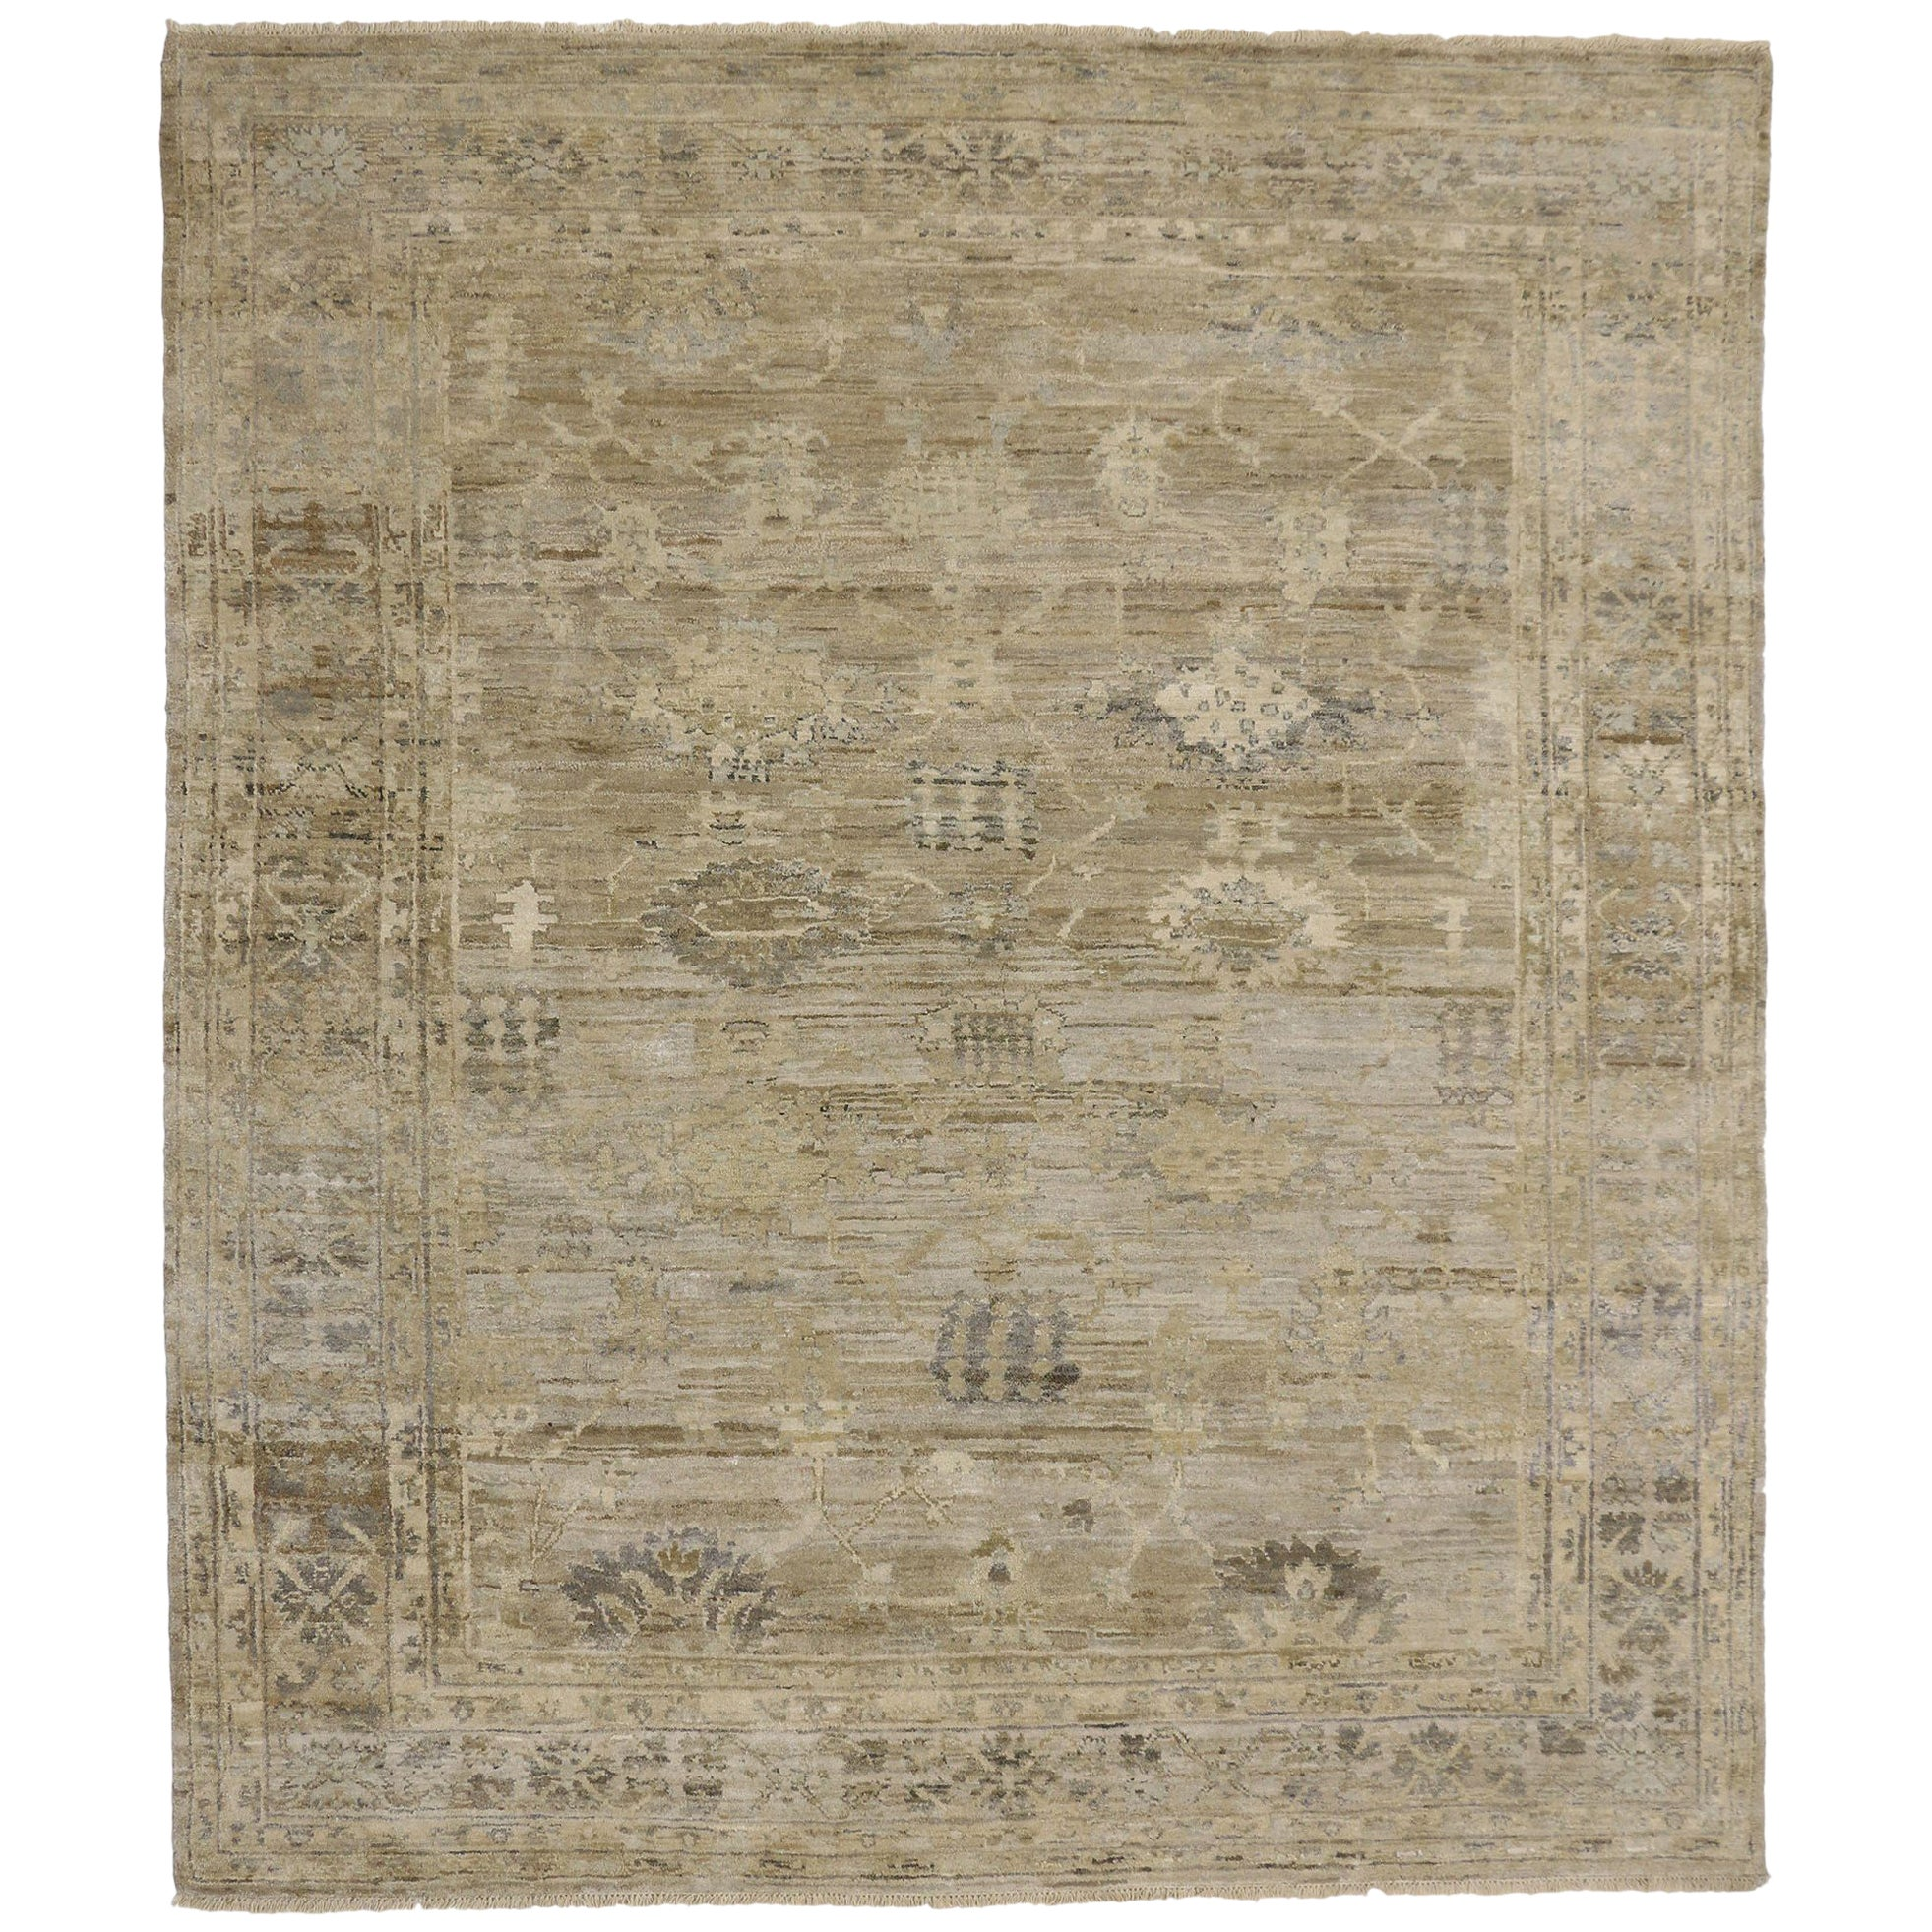 New Contemporary Oushak Design Rug with Transitional Style